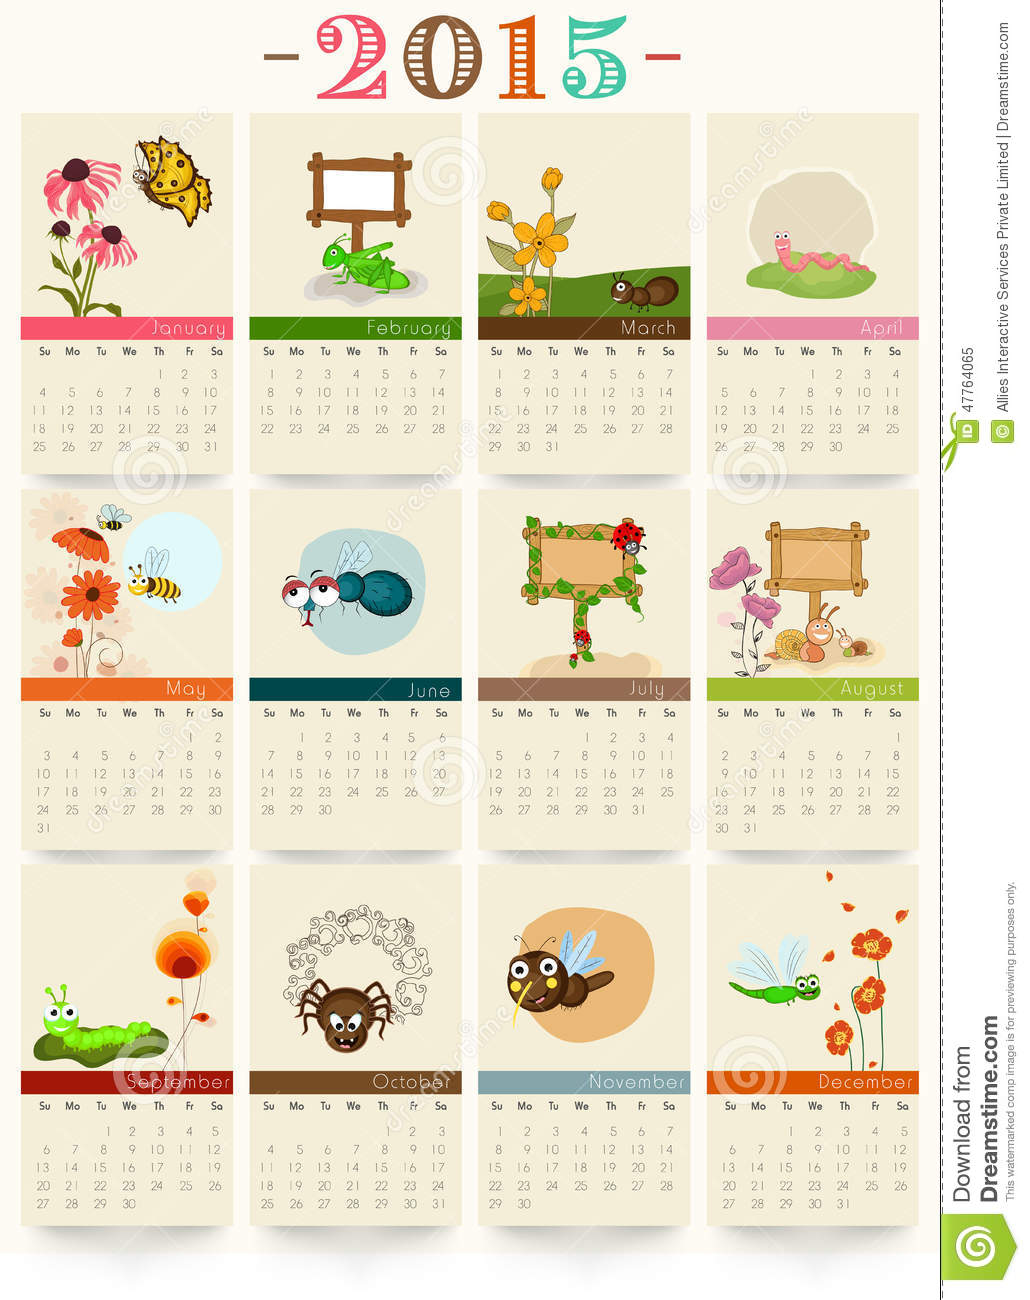 Monthly Calendar Events Special Days Celebrated : Calendar for happy new year celebrations stock